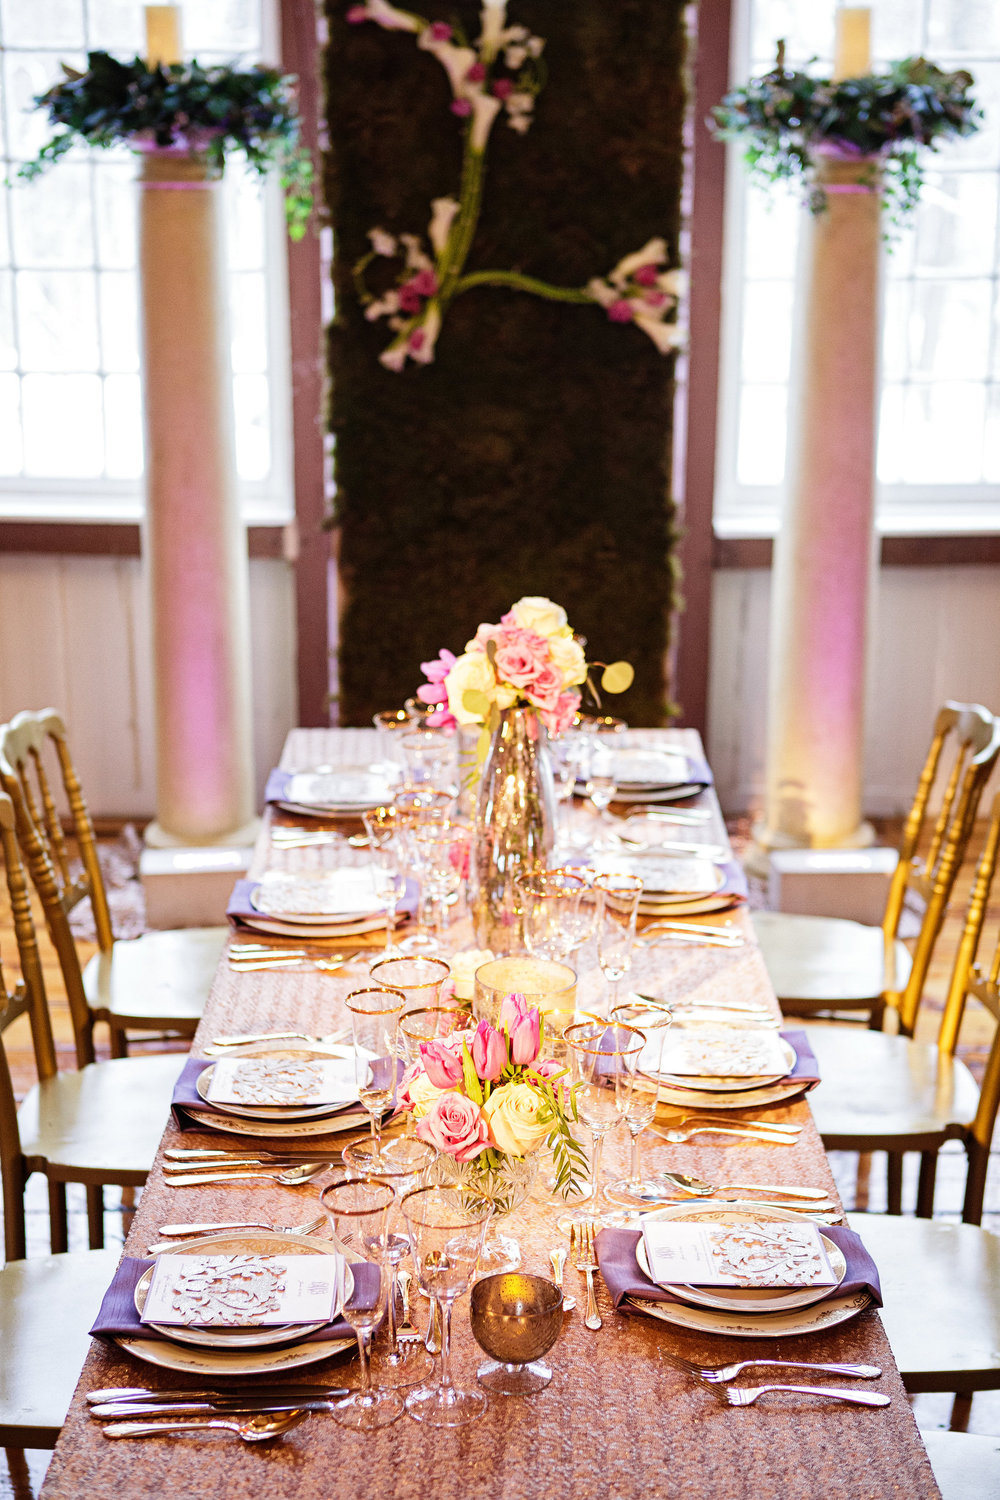 10 Philadelphia Wedding Gold Sequin Radiant Orchid Table Design.jpg